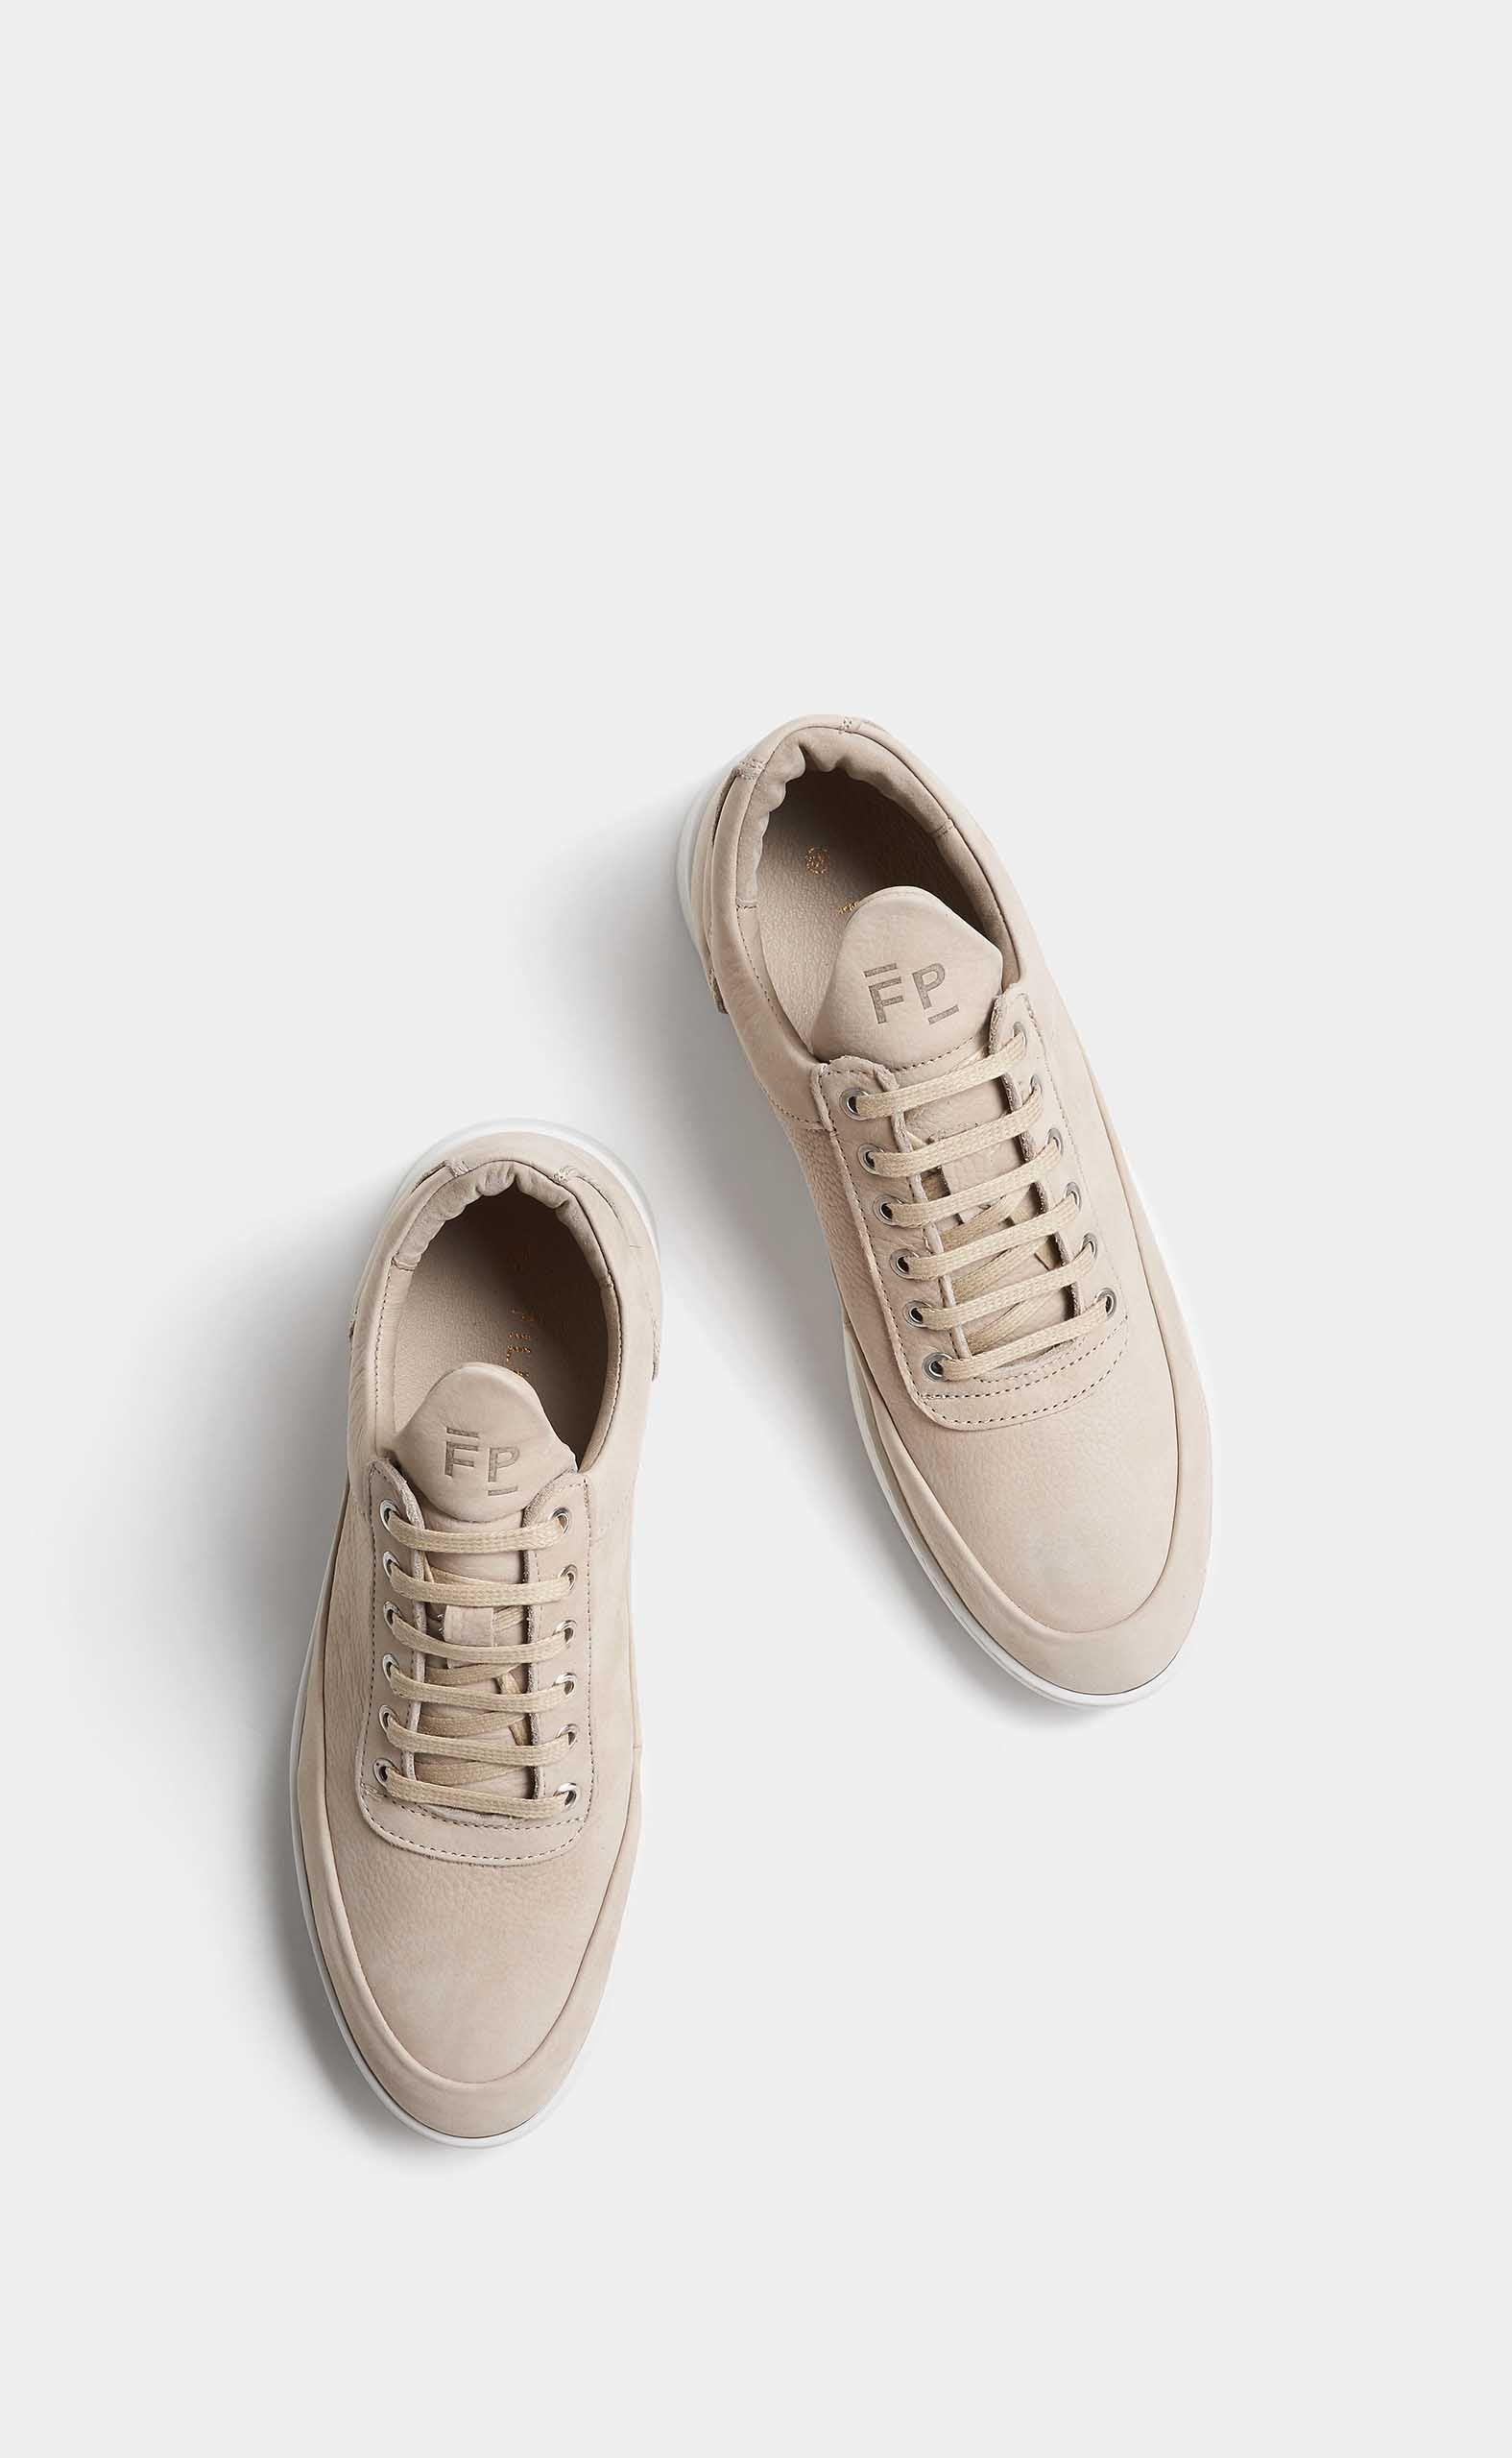 Low Top Ripple Cairos Beige